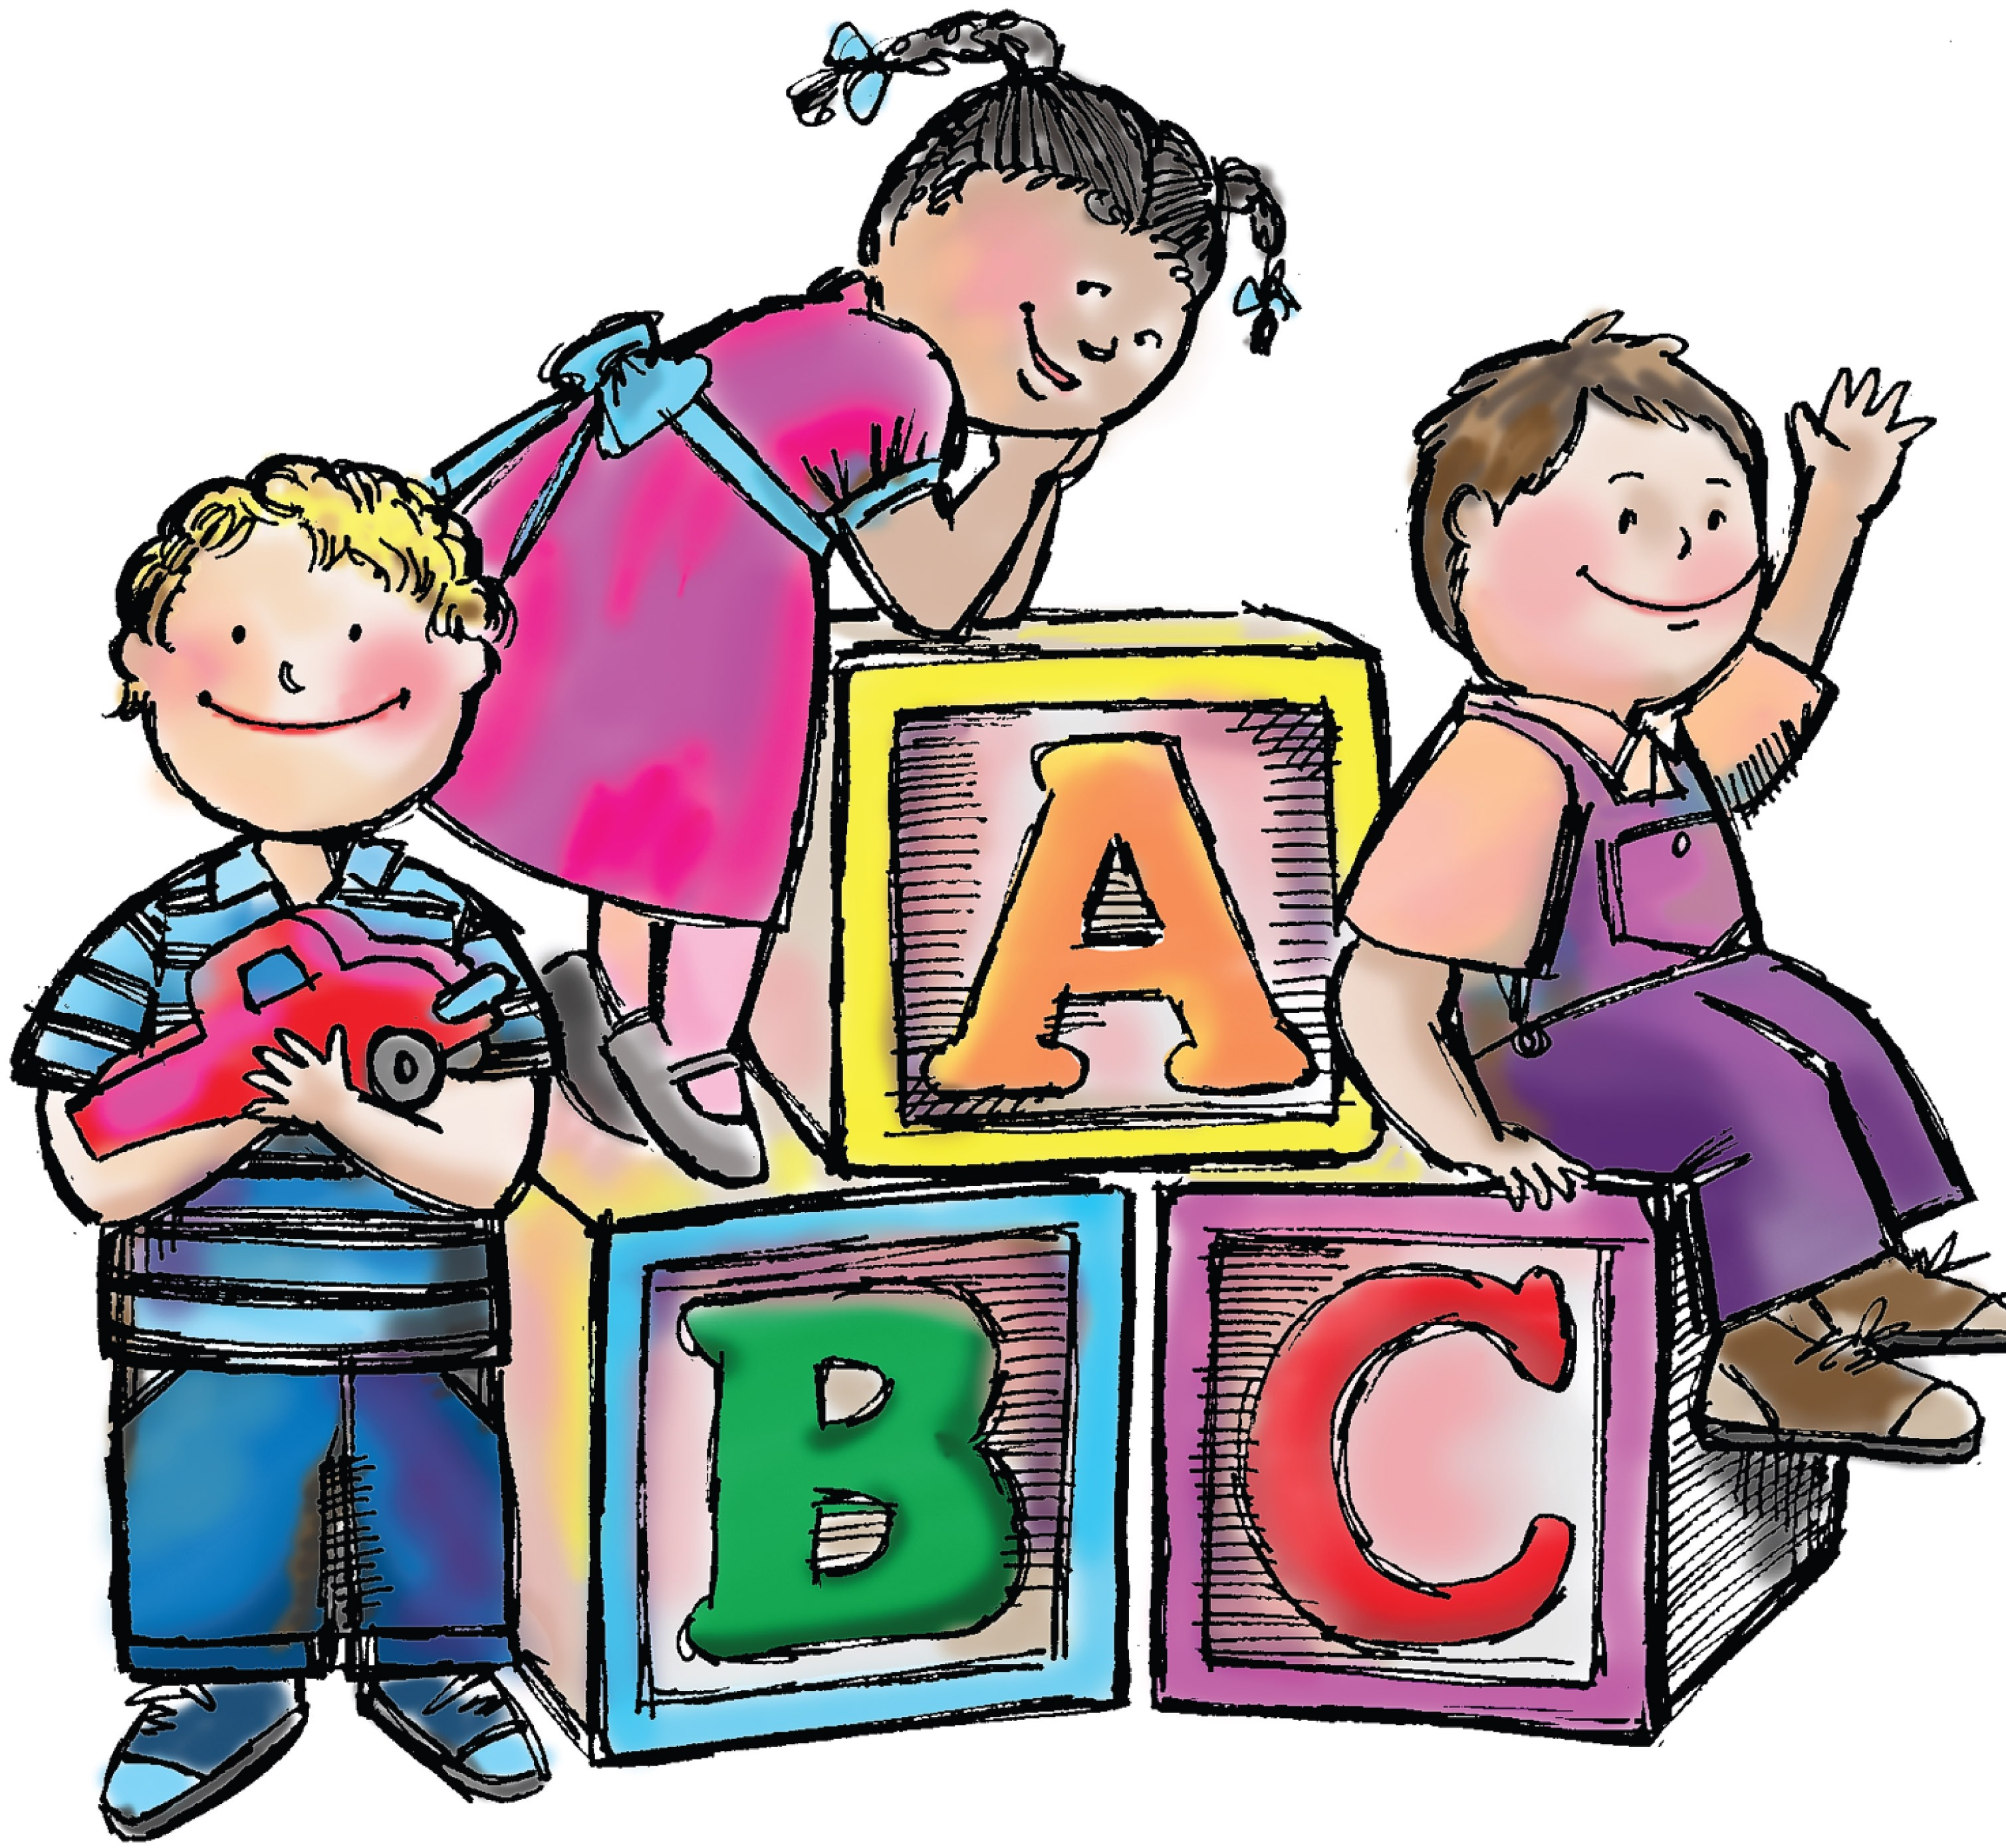 Free church nursery cliparts. Sharing clipart understanding person clip library